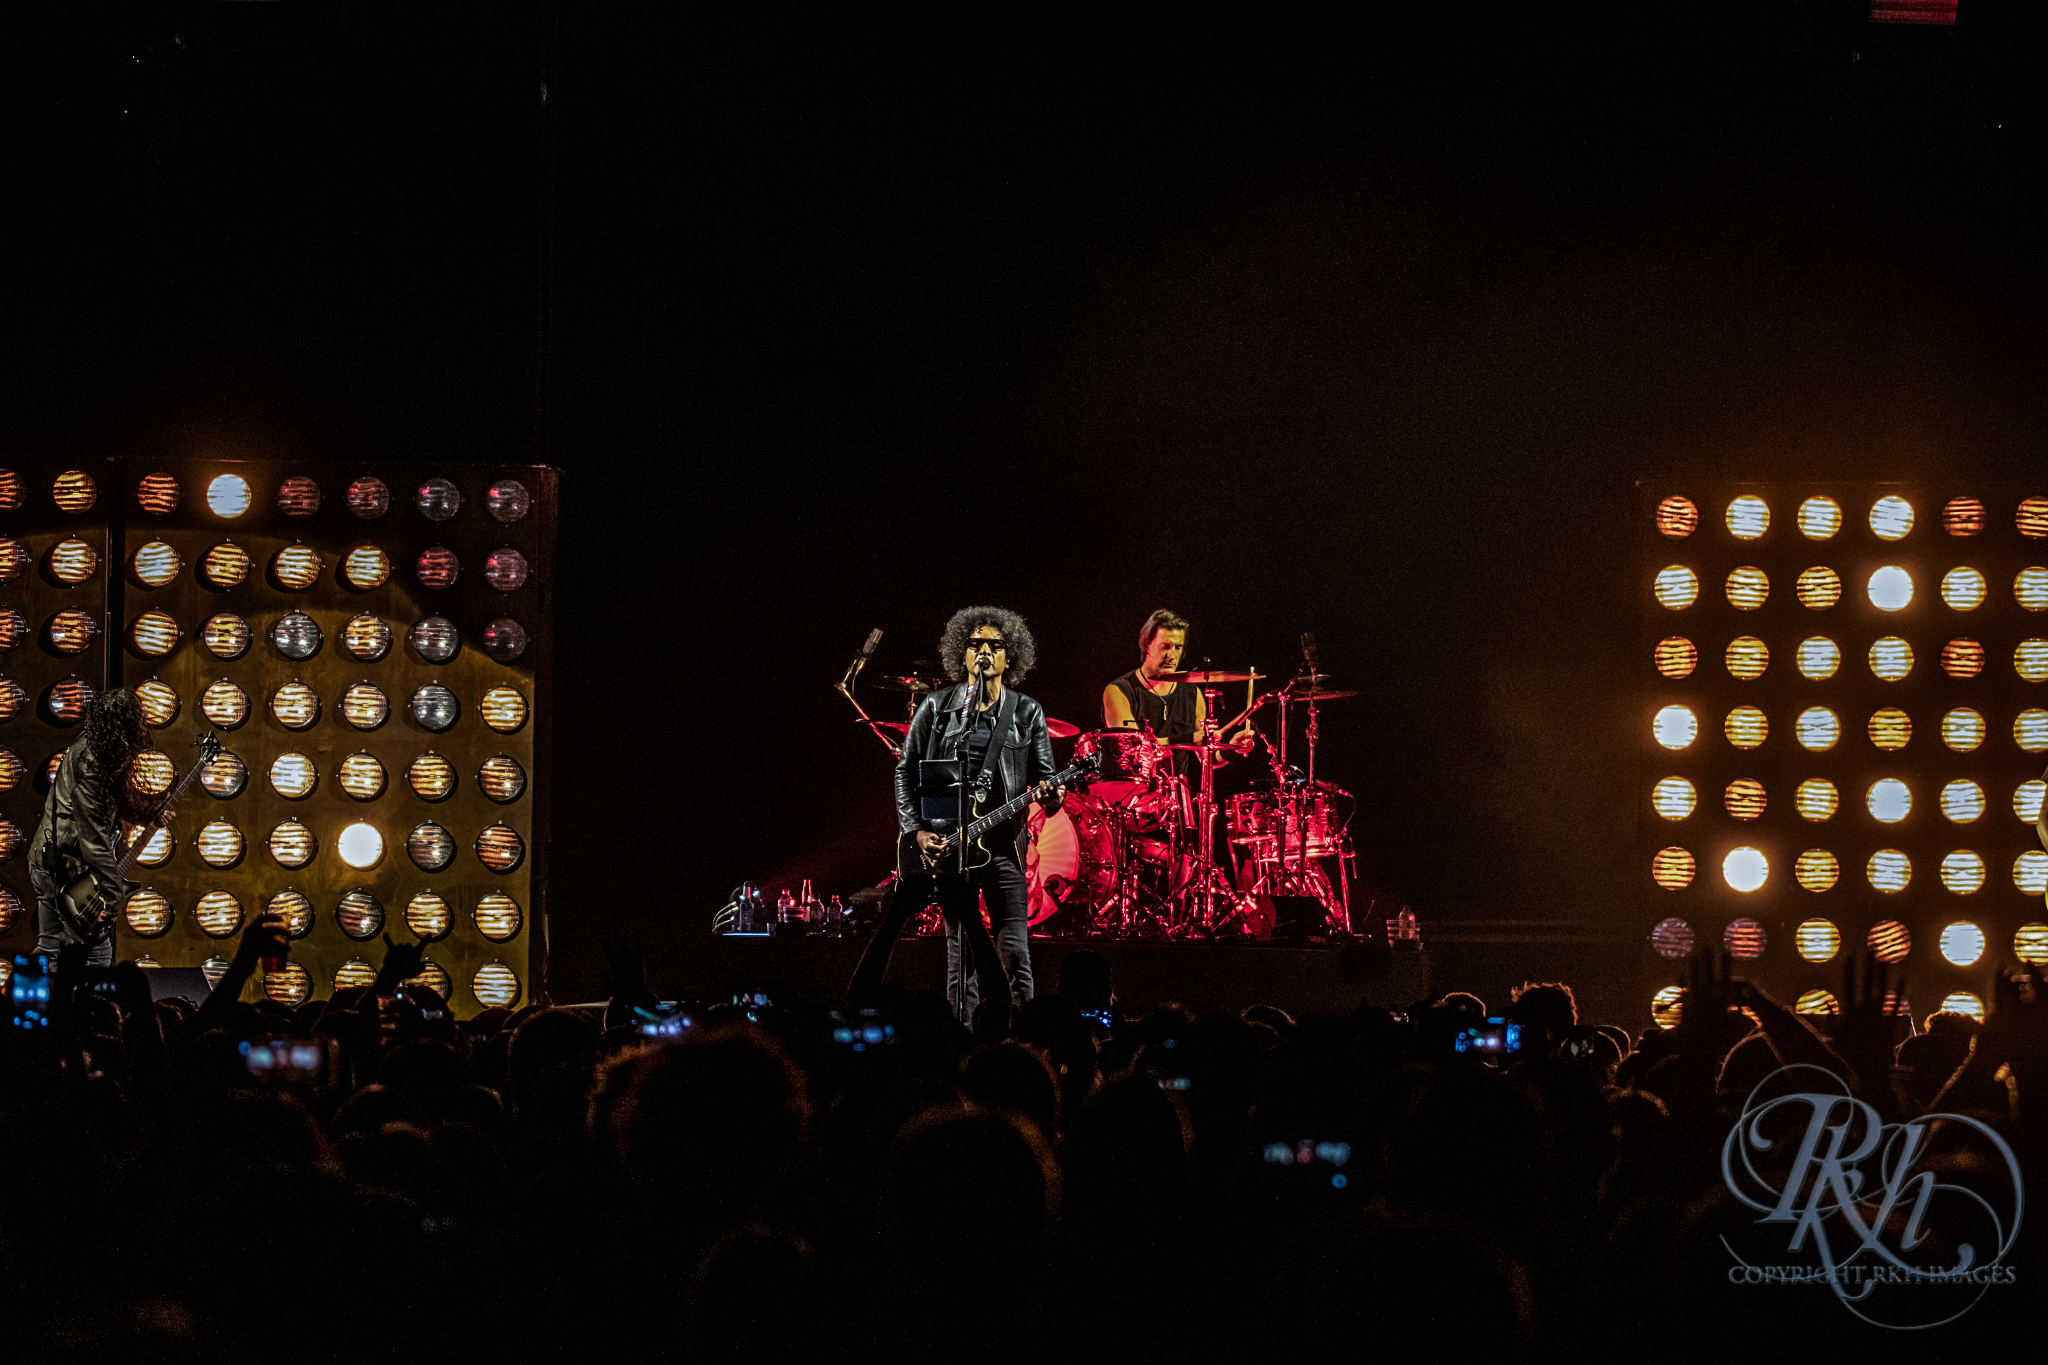 Alice in Chains - RKH Images - The Armory - Minneapolis, Minnesota  (2 of 15).jpg